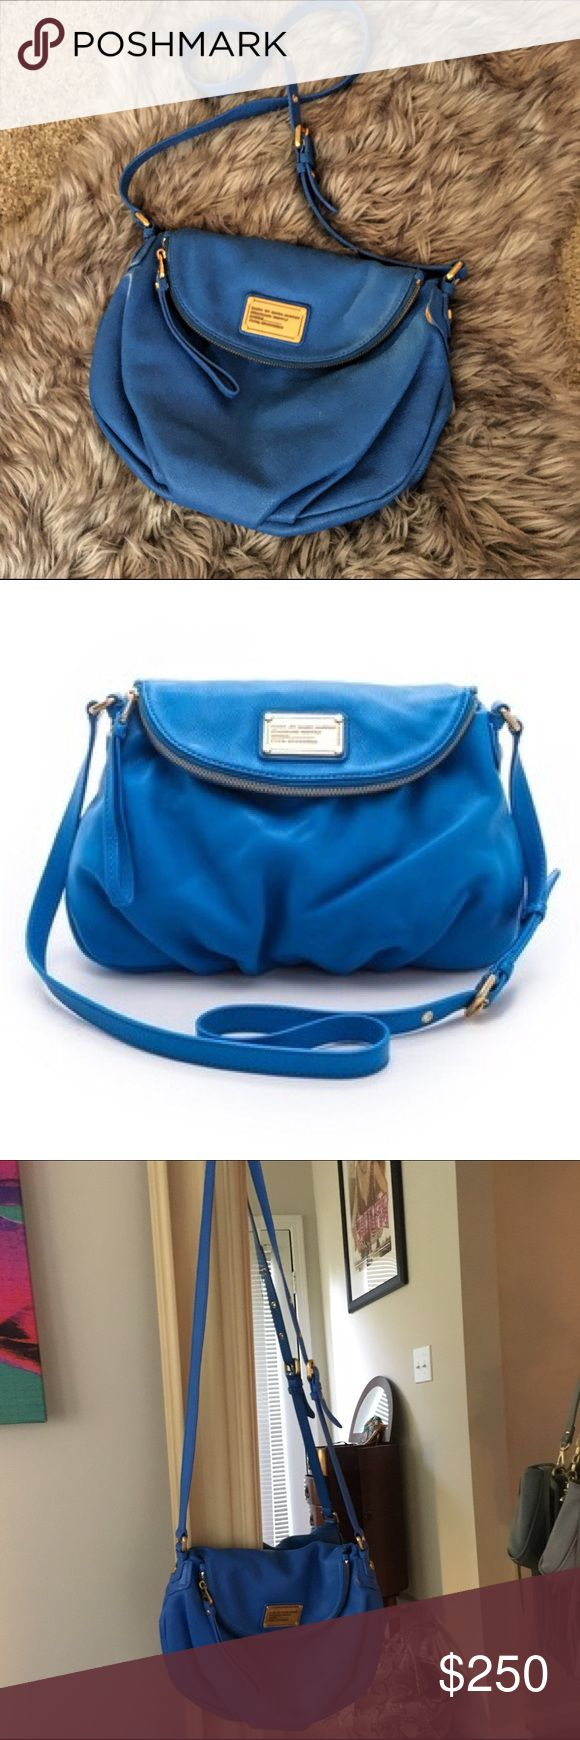 ✨ marc by marc jacobs - Electric Blue Lemonade Authentic Marc by Marc Jacobs classic Q Natasha crossbody in electric blue lemonade. EUC. So many compliments. Please read my closet rules ✨ Marc by Marc Jacobs Bags Crossbody Bags